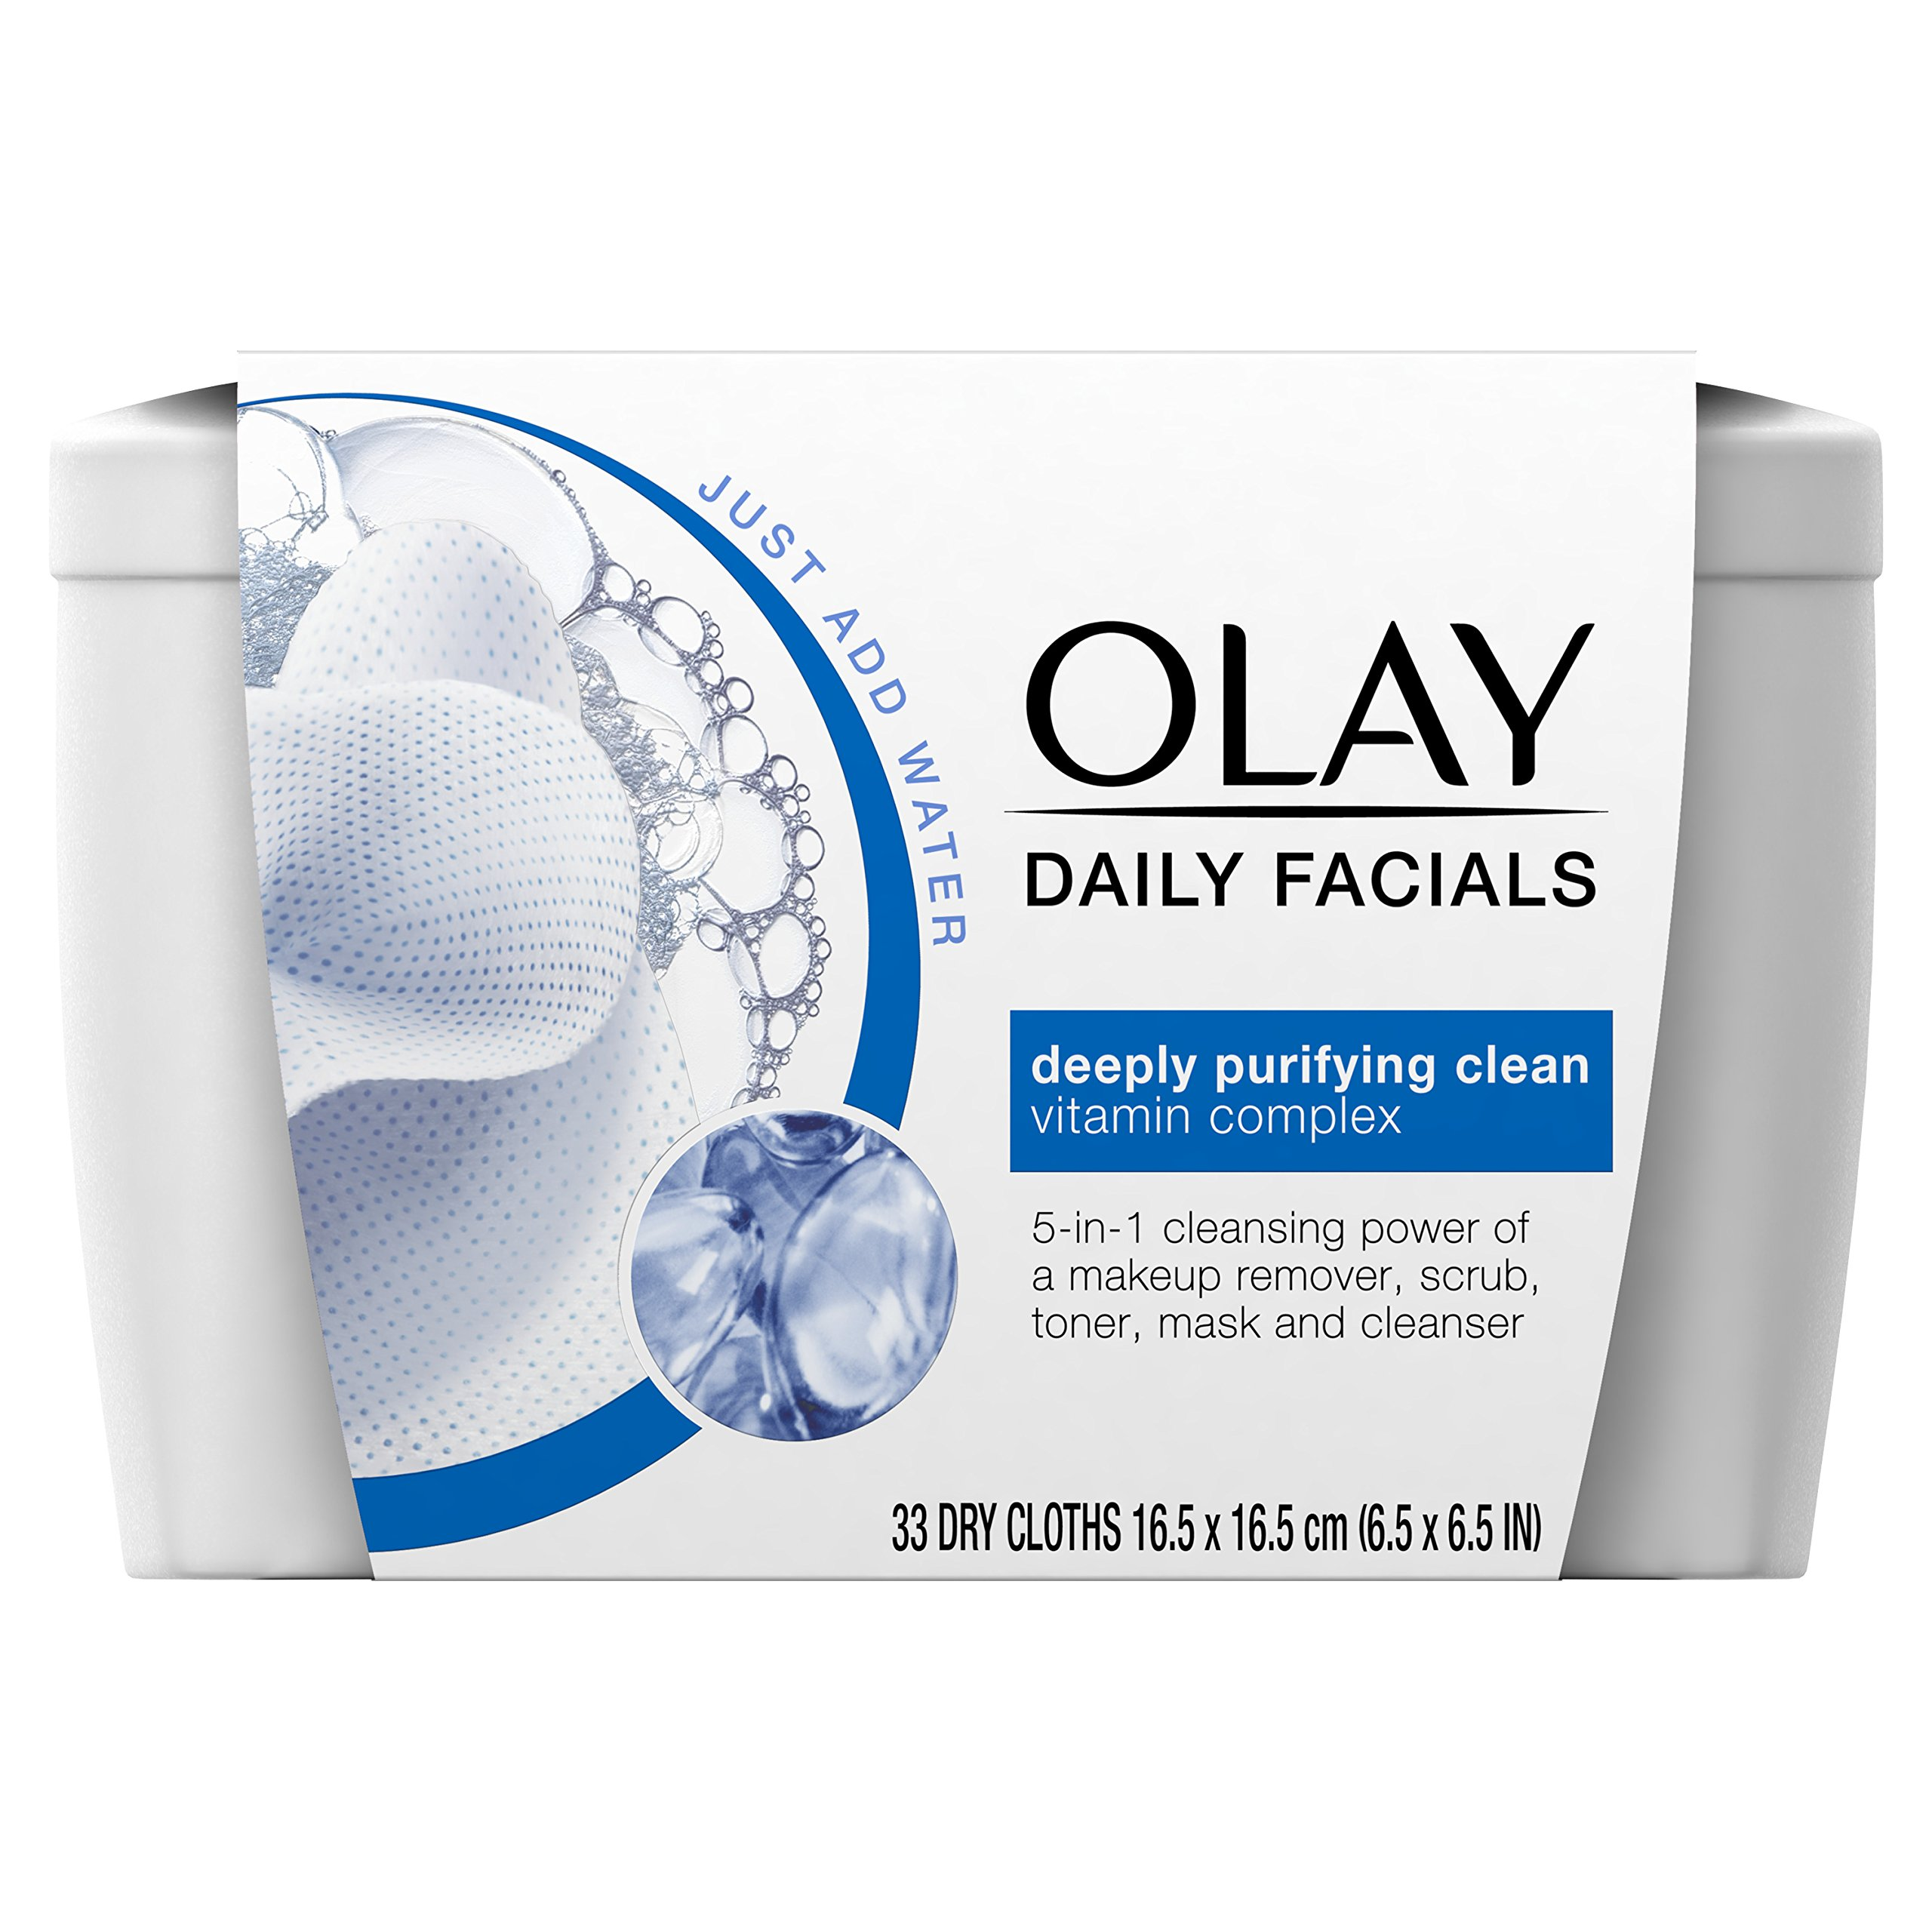 Makeup Remover by Olay Daily Facial Cleansing Cloths Tub for A Deeply Purifying Clean, Makeup Remover, 33 Count (Pack of 12)